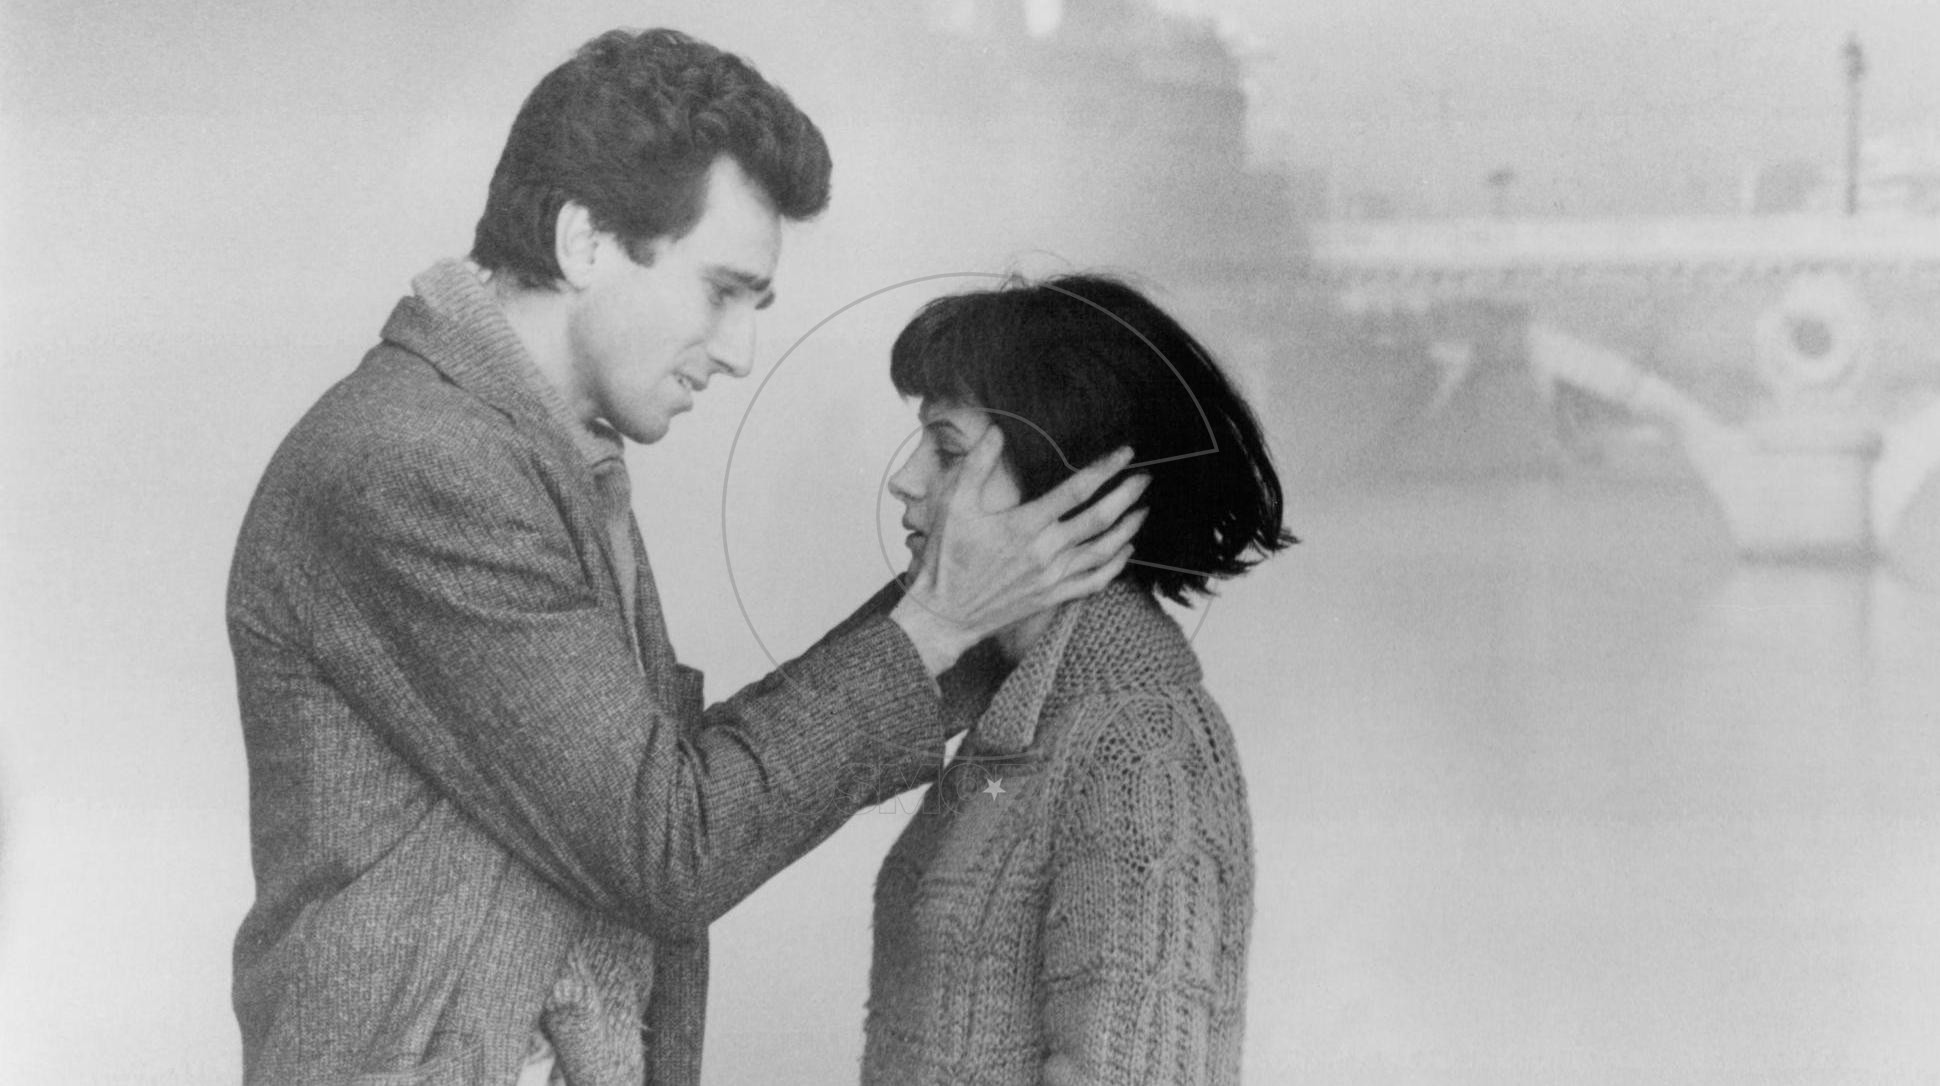 still-of-juliette-binoche-and-daniel-day-lewis-in-the-unbearable-lightness-of-being-(1988)-large-picture